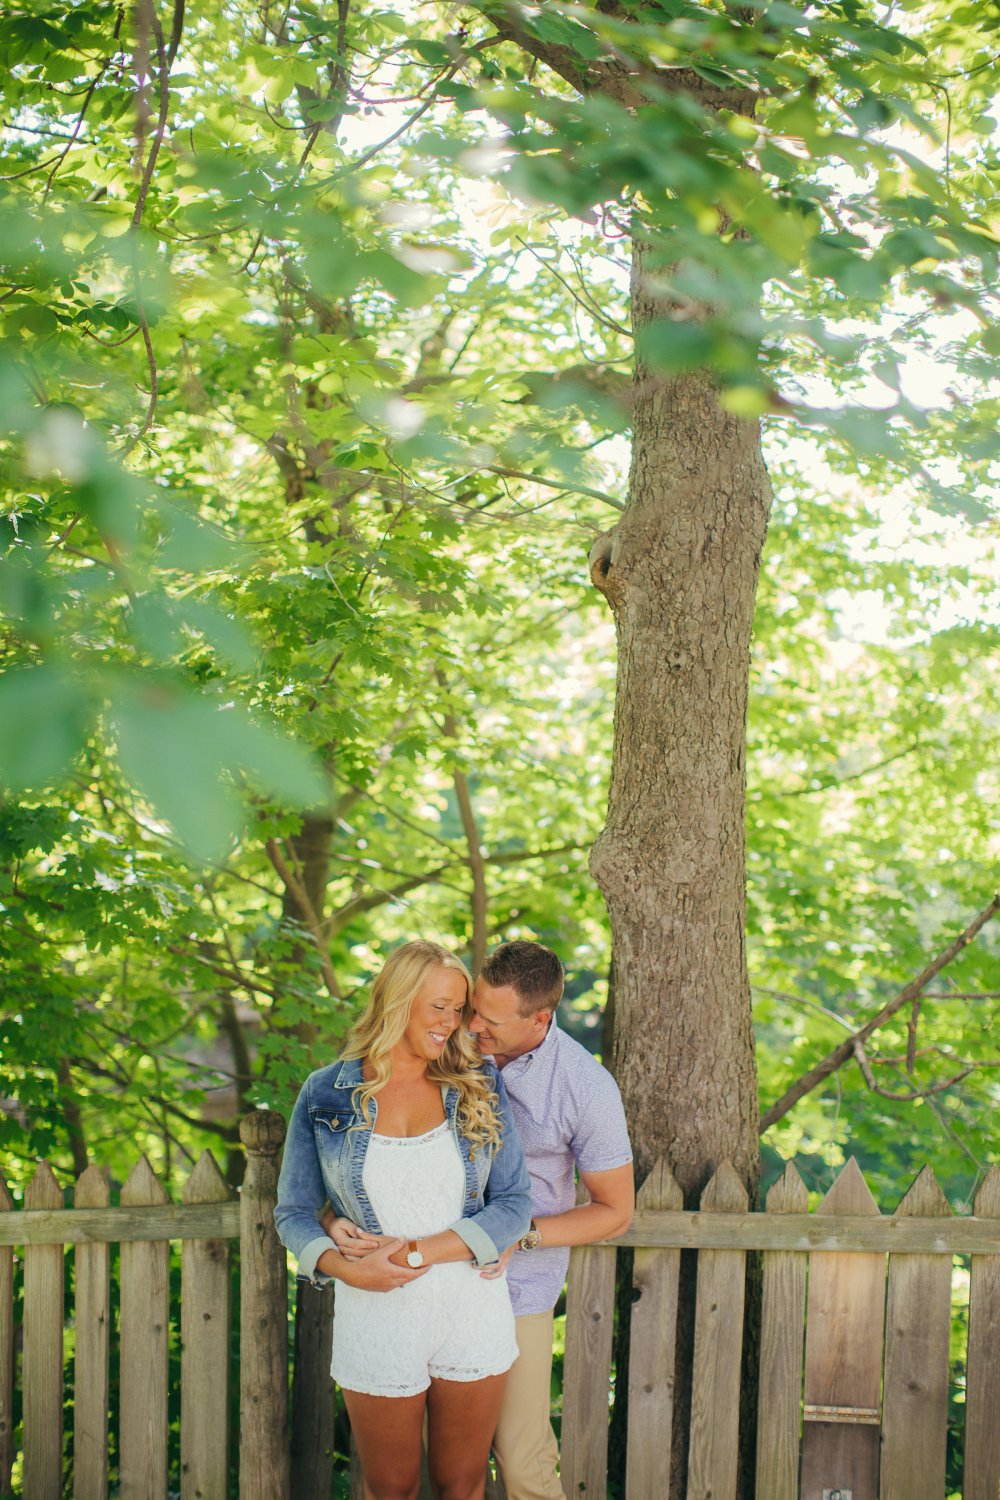 JF Hannigan Photography Engagement Session: Kerissa and Nathan: back in the C A N A D A 1